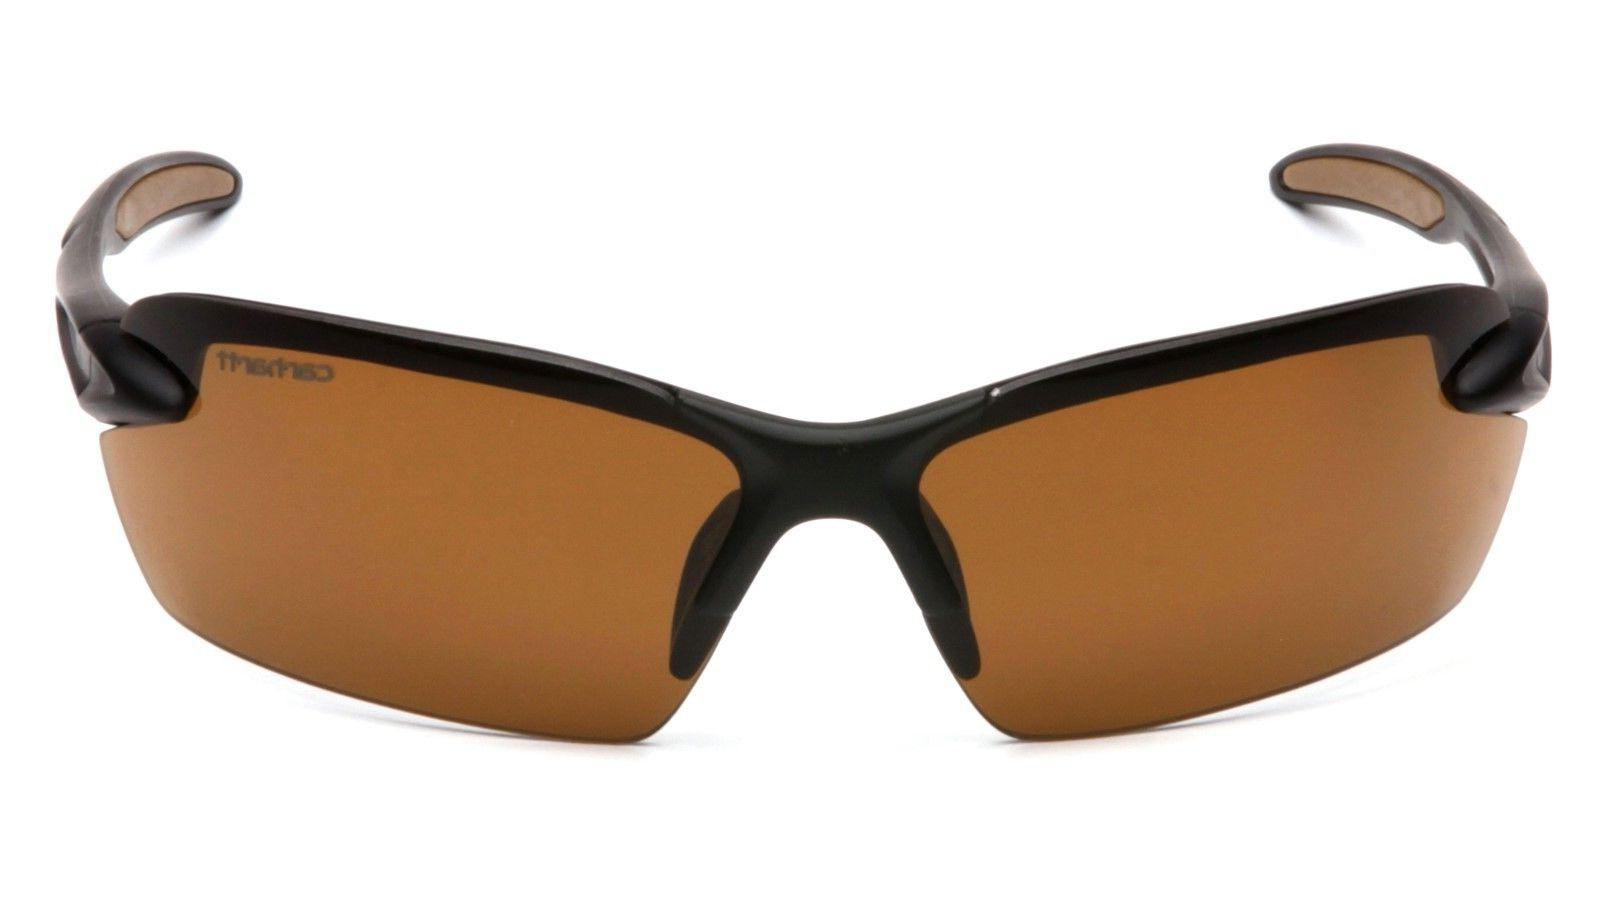 spokane safety glasses black frames and bronze